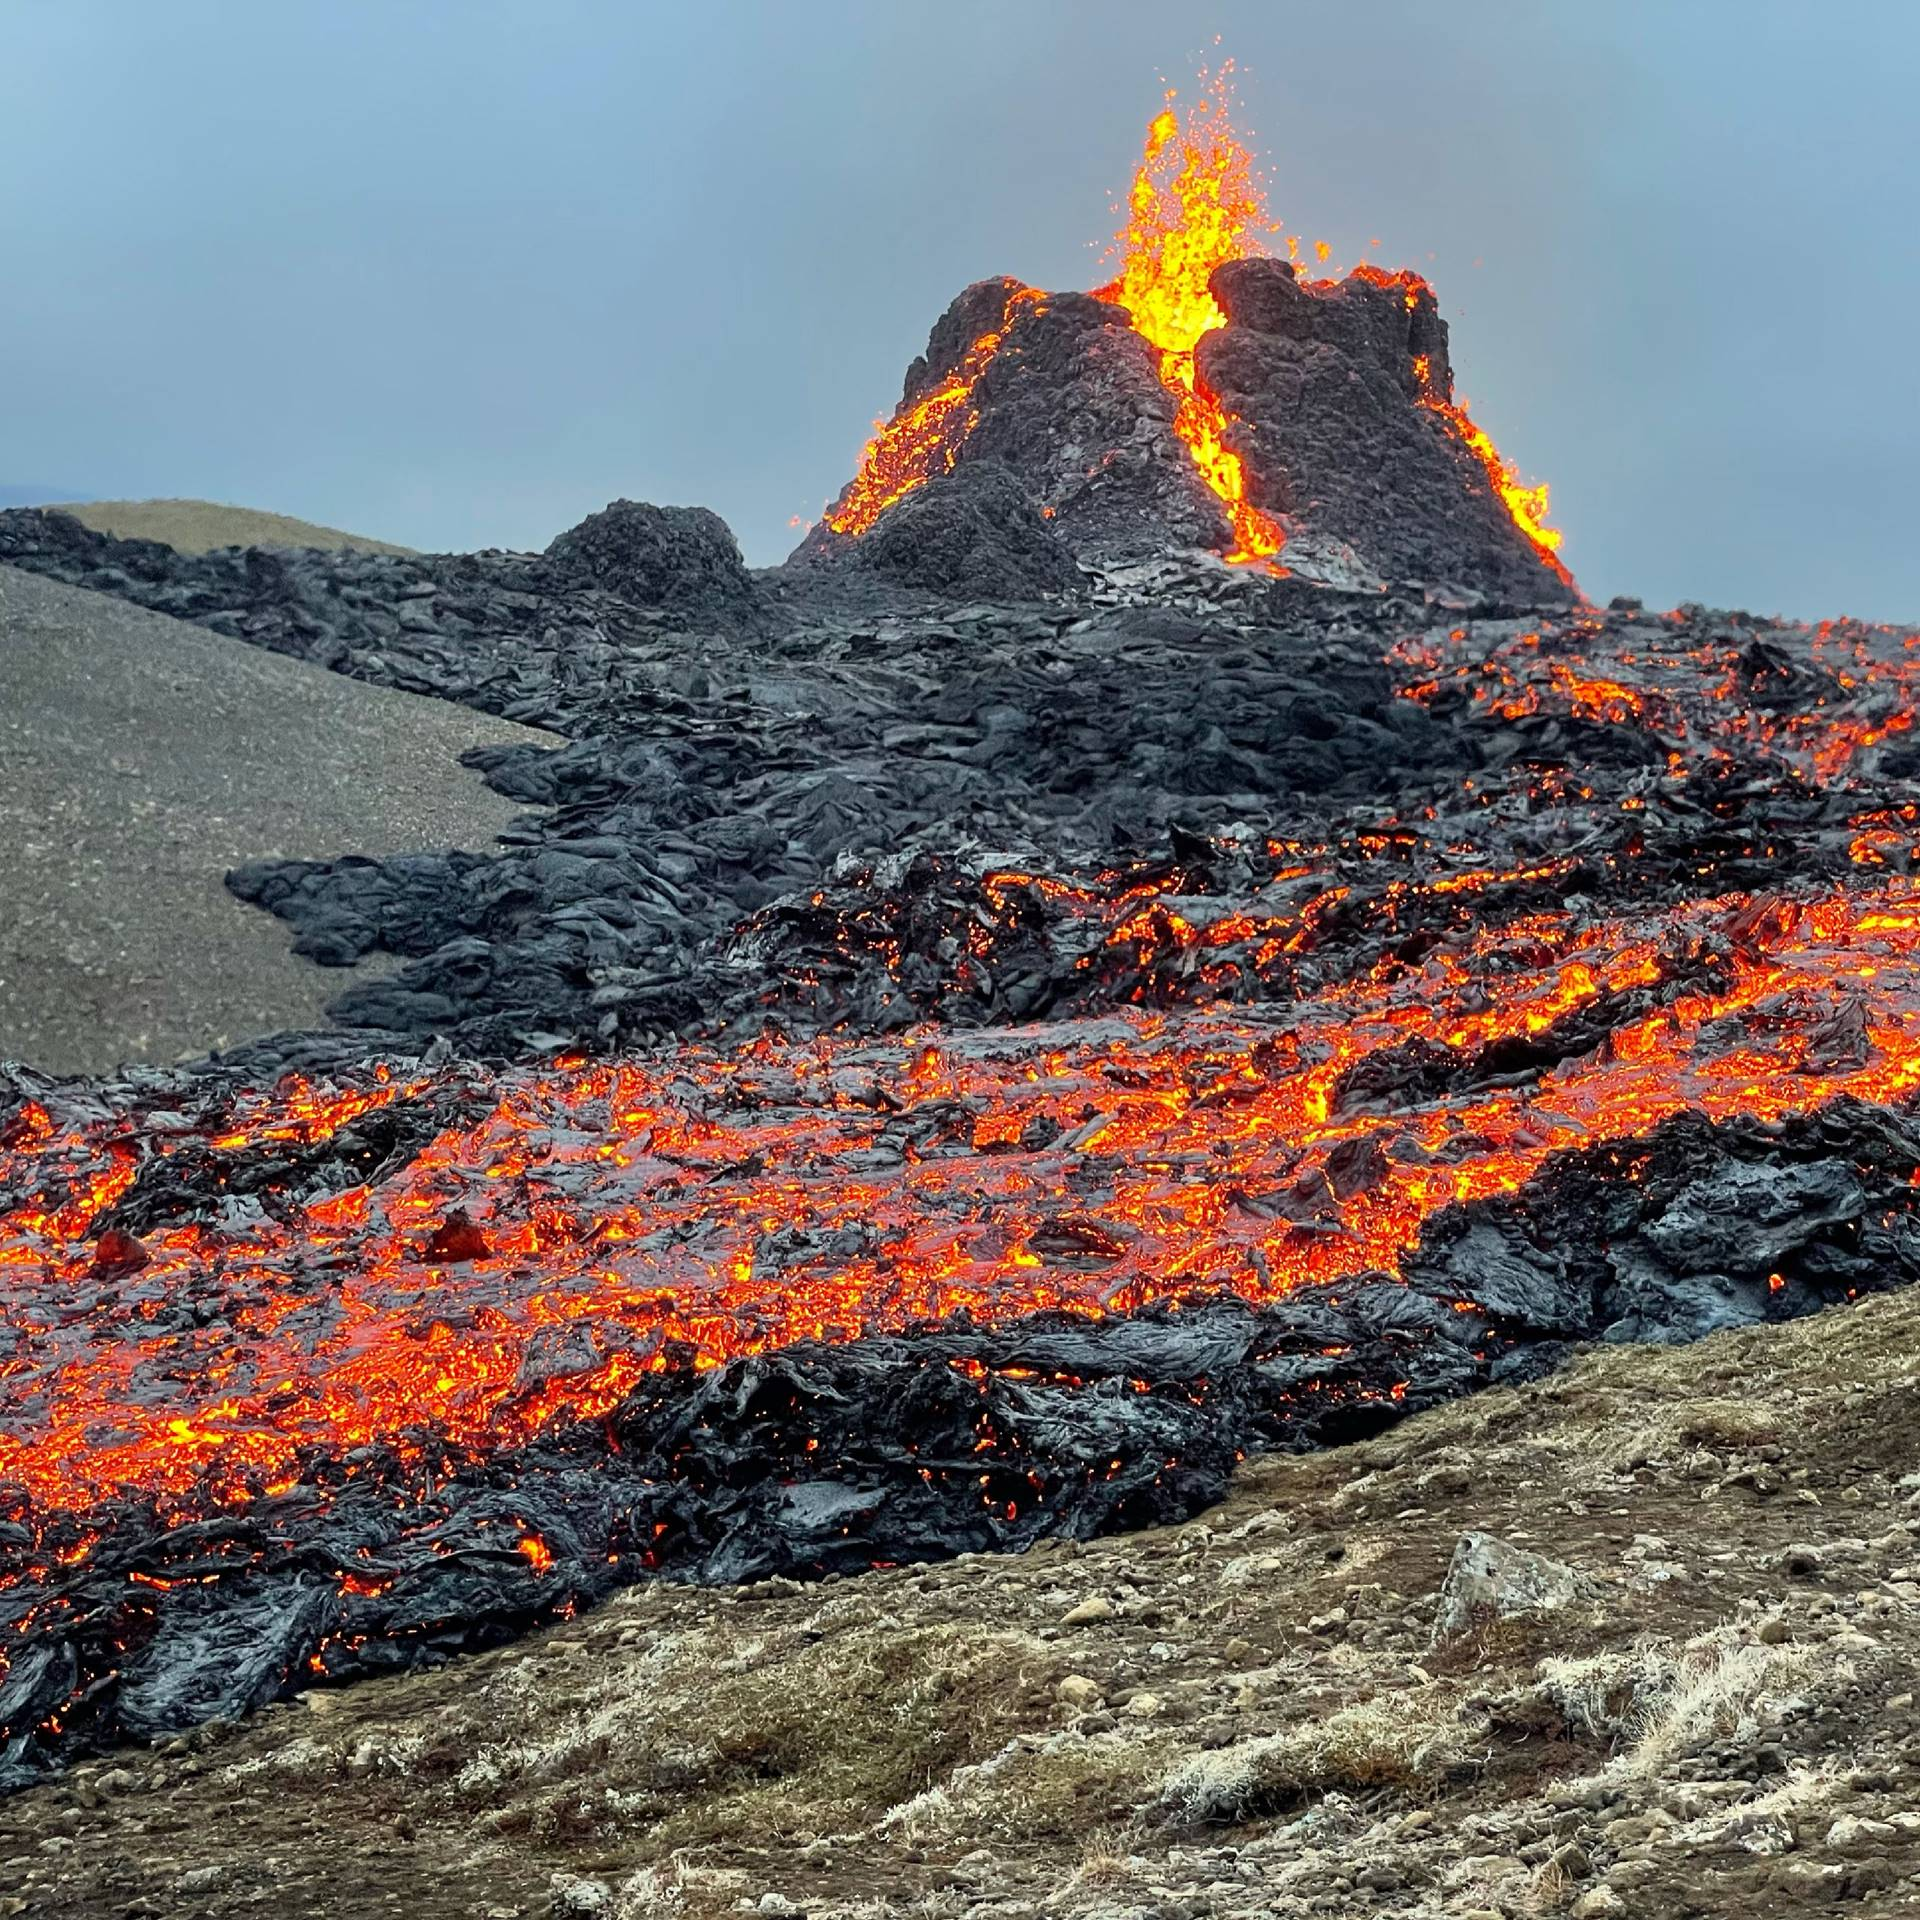 A small volcanic eruption has started in Iceland - mynd